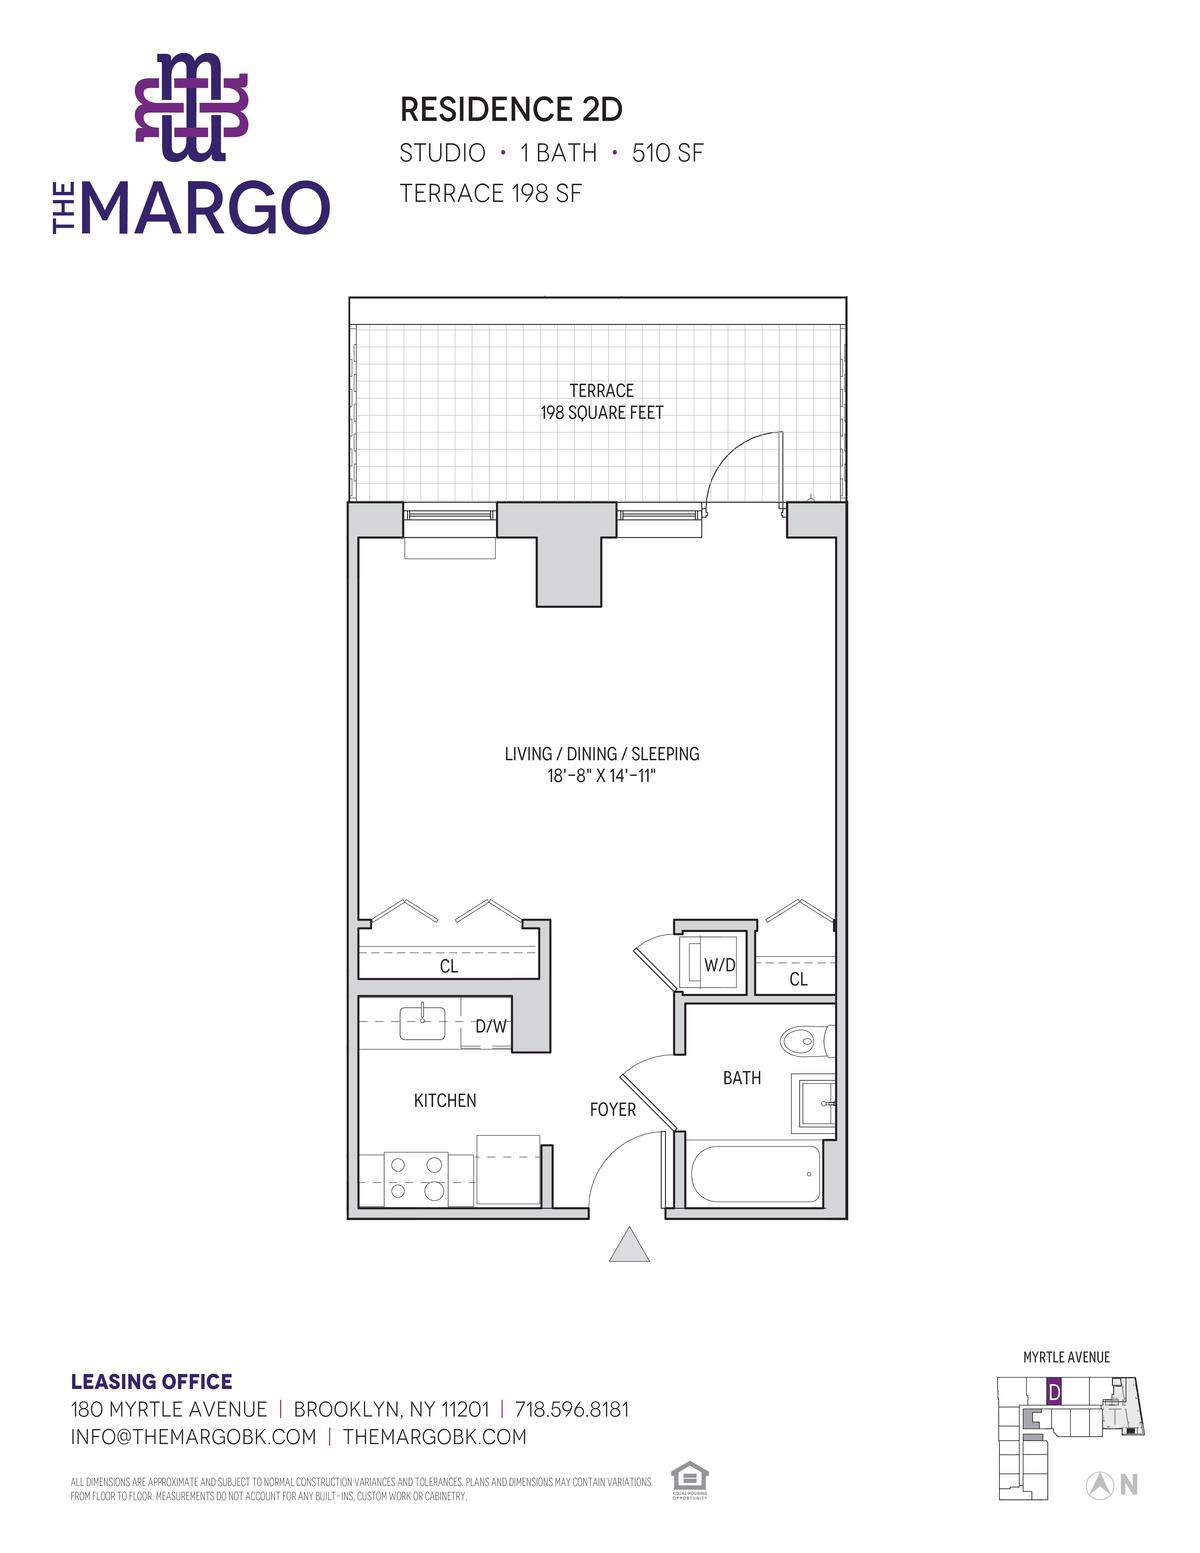 Streeteasy The Margo At 180 Myrtle Avenue In Downtown